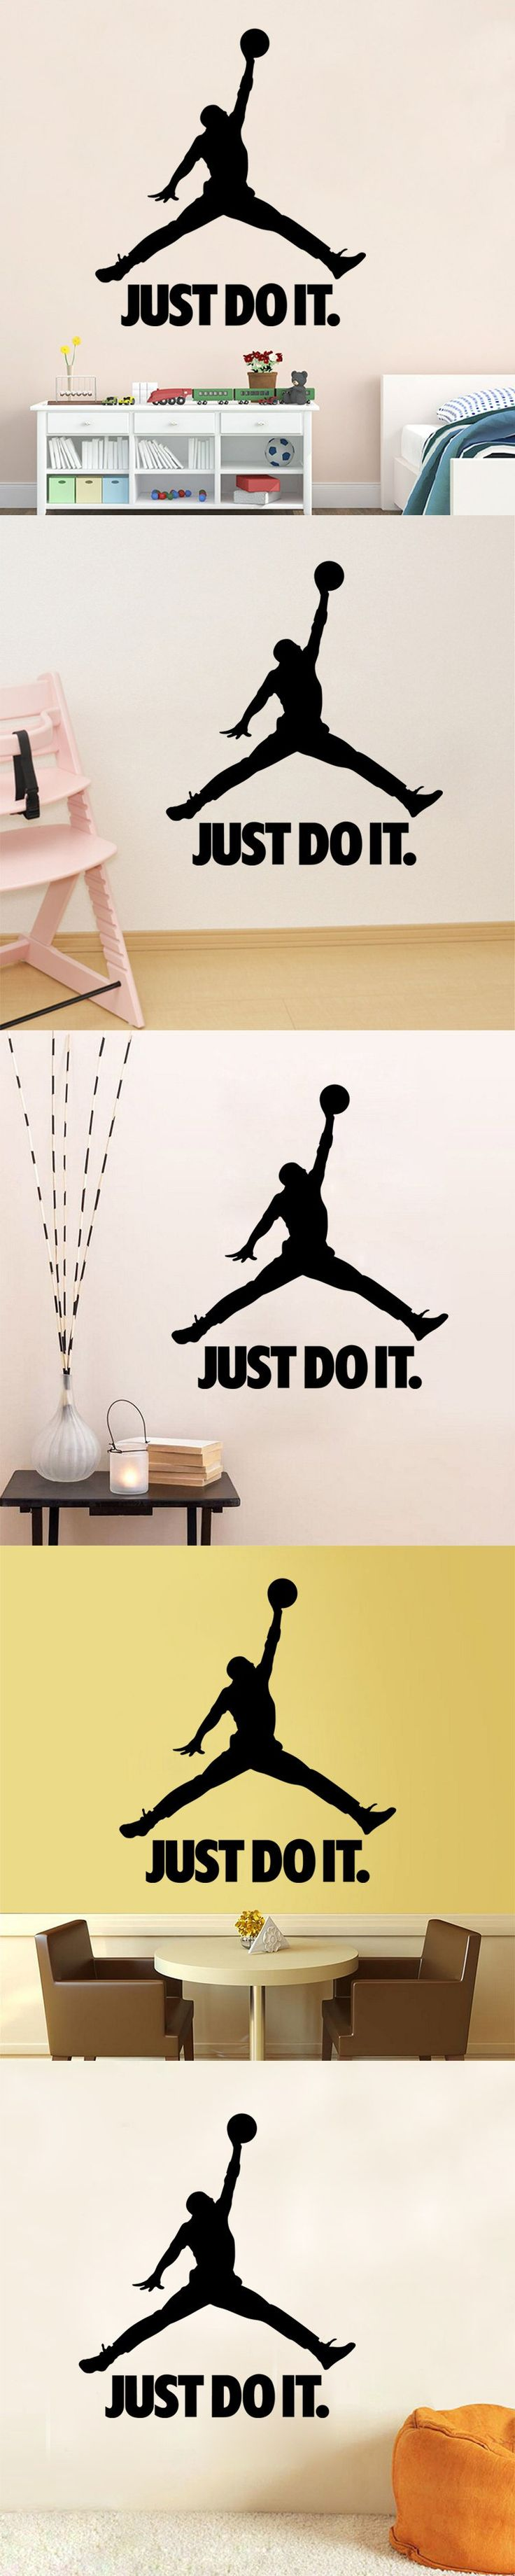 9334 Michael Jordan Basketball Player Wall Stickers For Kids Room DIY Home Decorations Just do it Wall Decals All-Star Wall a1 $6.84